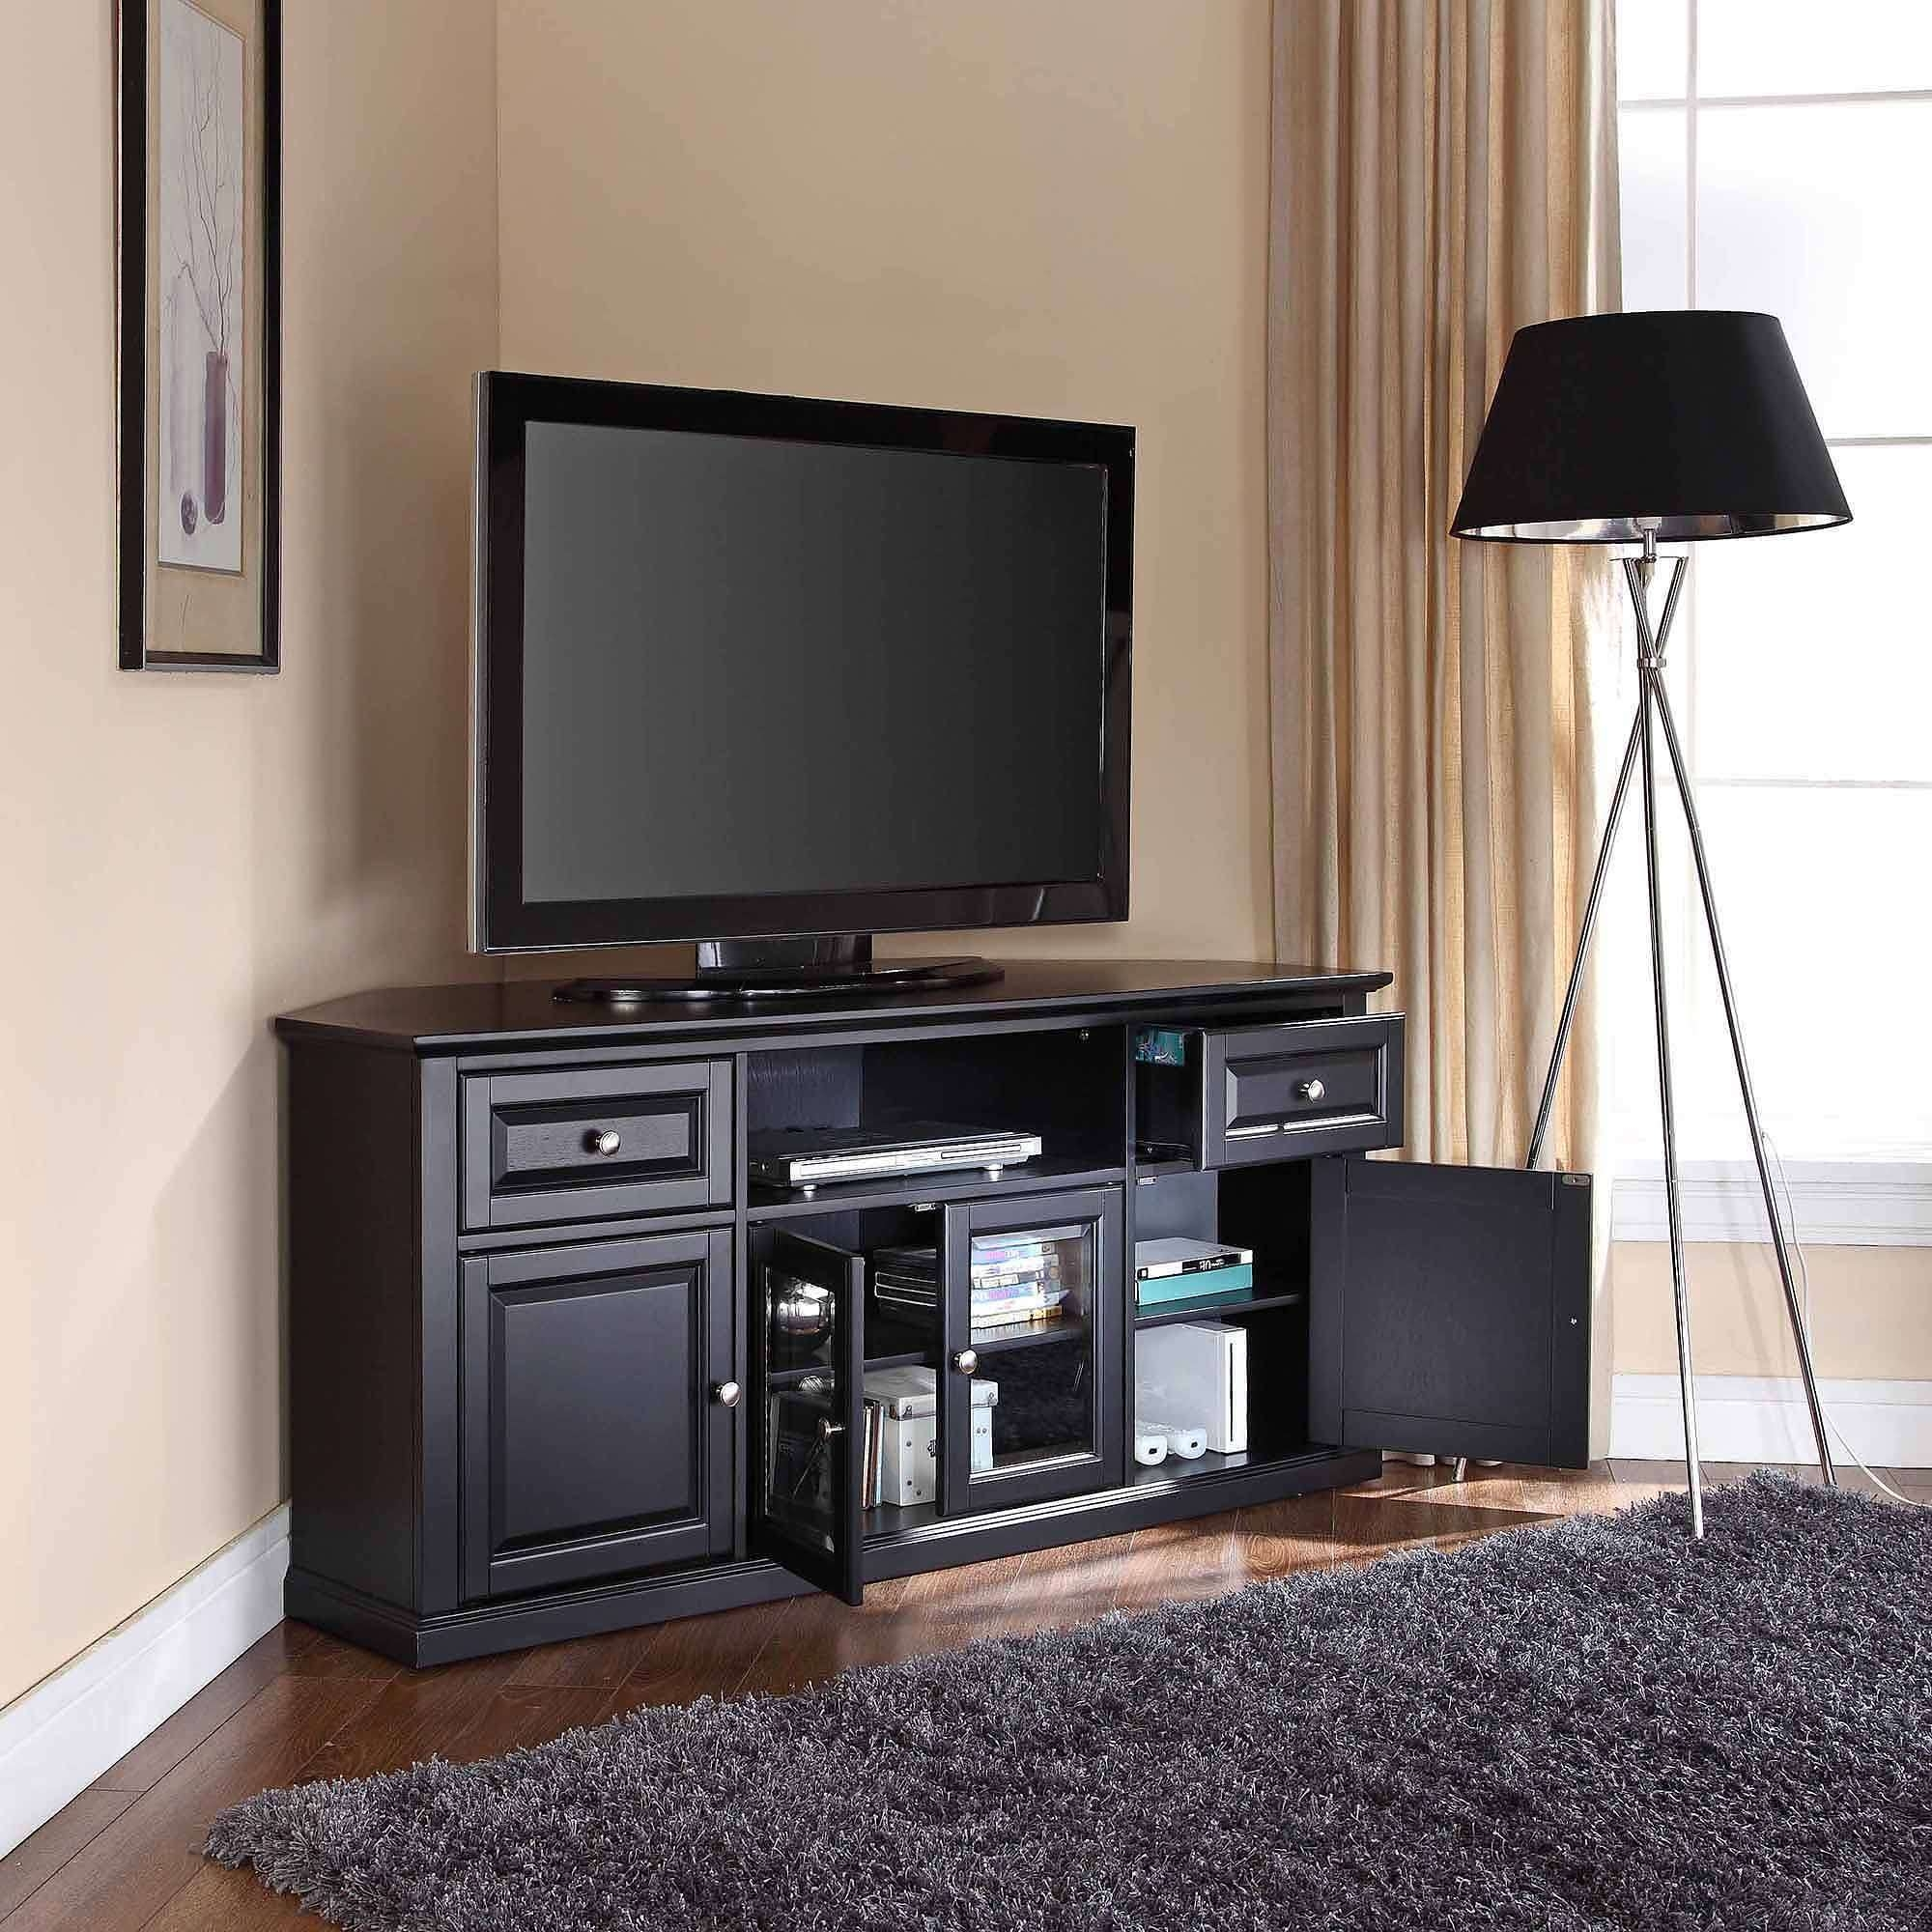 50 Inch Corner Tv Stands Tags : 43 Outstanding 50 Inch Corner Tv Within 50 Inch Corner Tv Cabinets (View 4 of 20)